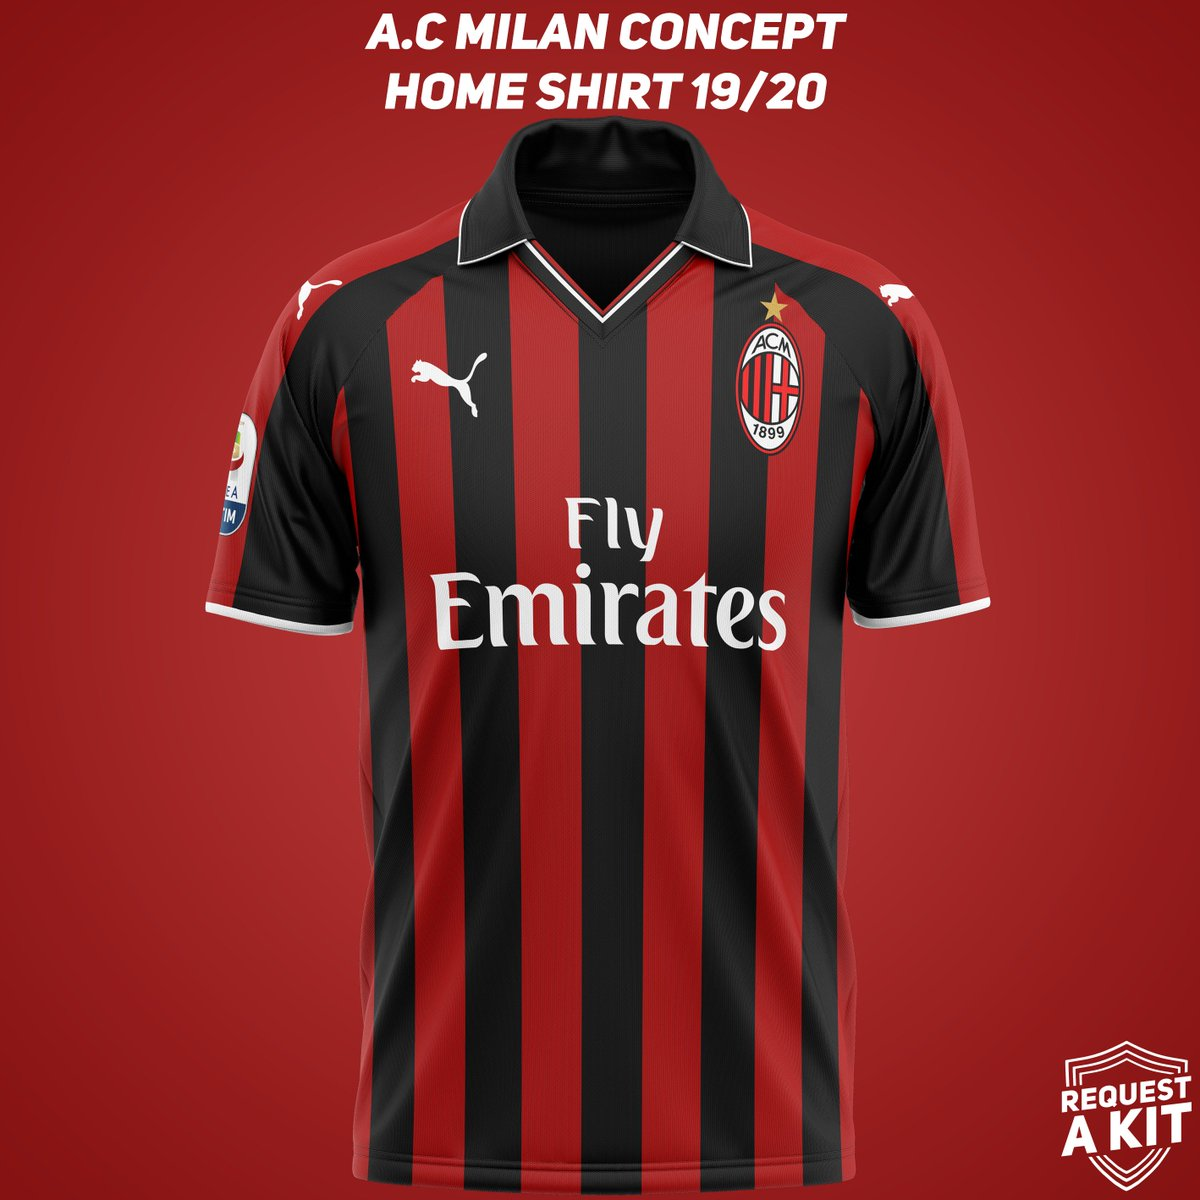 Request A Kit On Twitter A C Milan Concept Home Away And Third Shirts 2019 20 Requested By Atahualpamaia Milan Weareacmilan Forzamilan Rossoneri Milanyouth Fm19 Wearethecommunity Download For Your Football Manager Save Here Https T Co